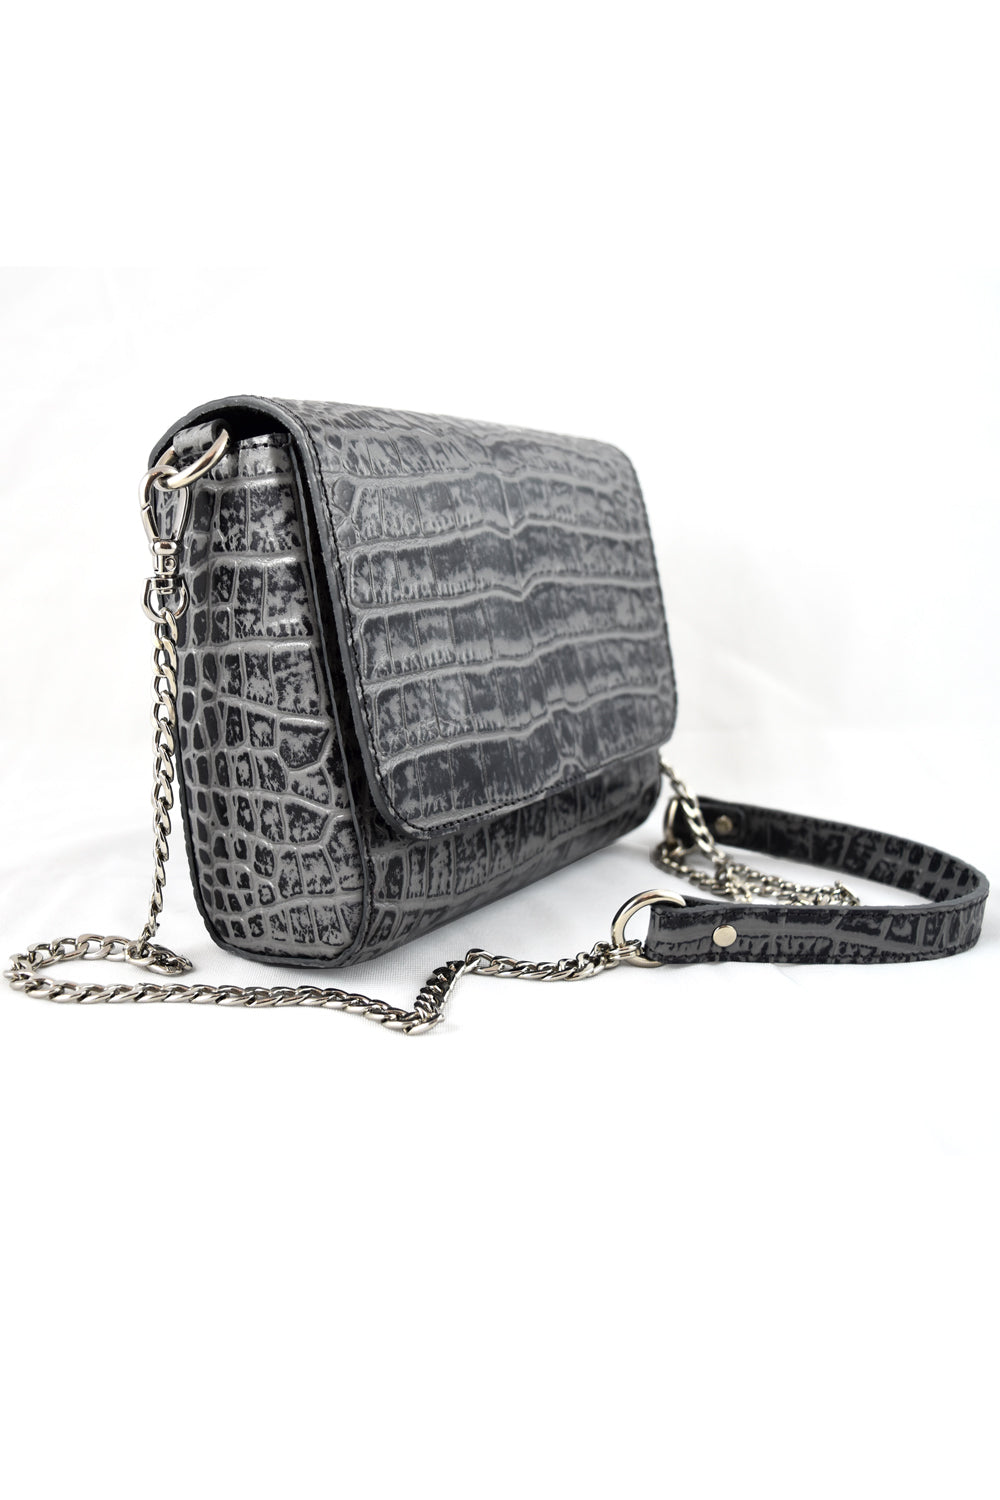 'Gema' Small Shoulder Bag in Grey, Croc-Emboss Leather | Mel Boteri | Side View